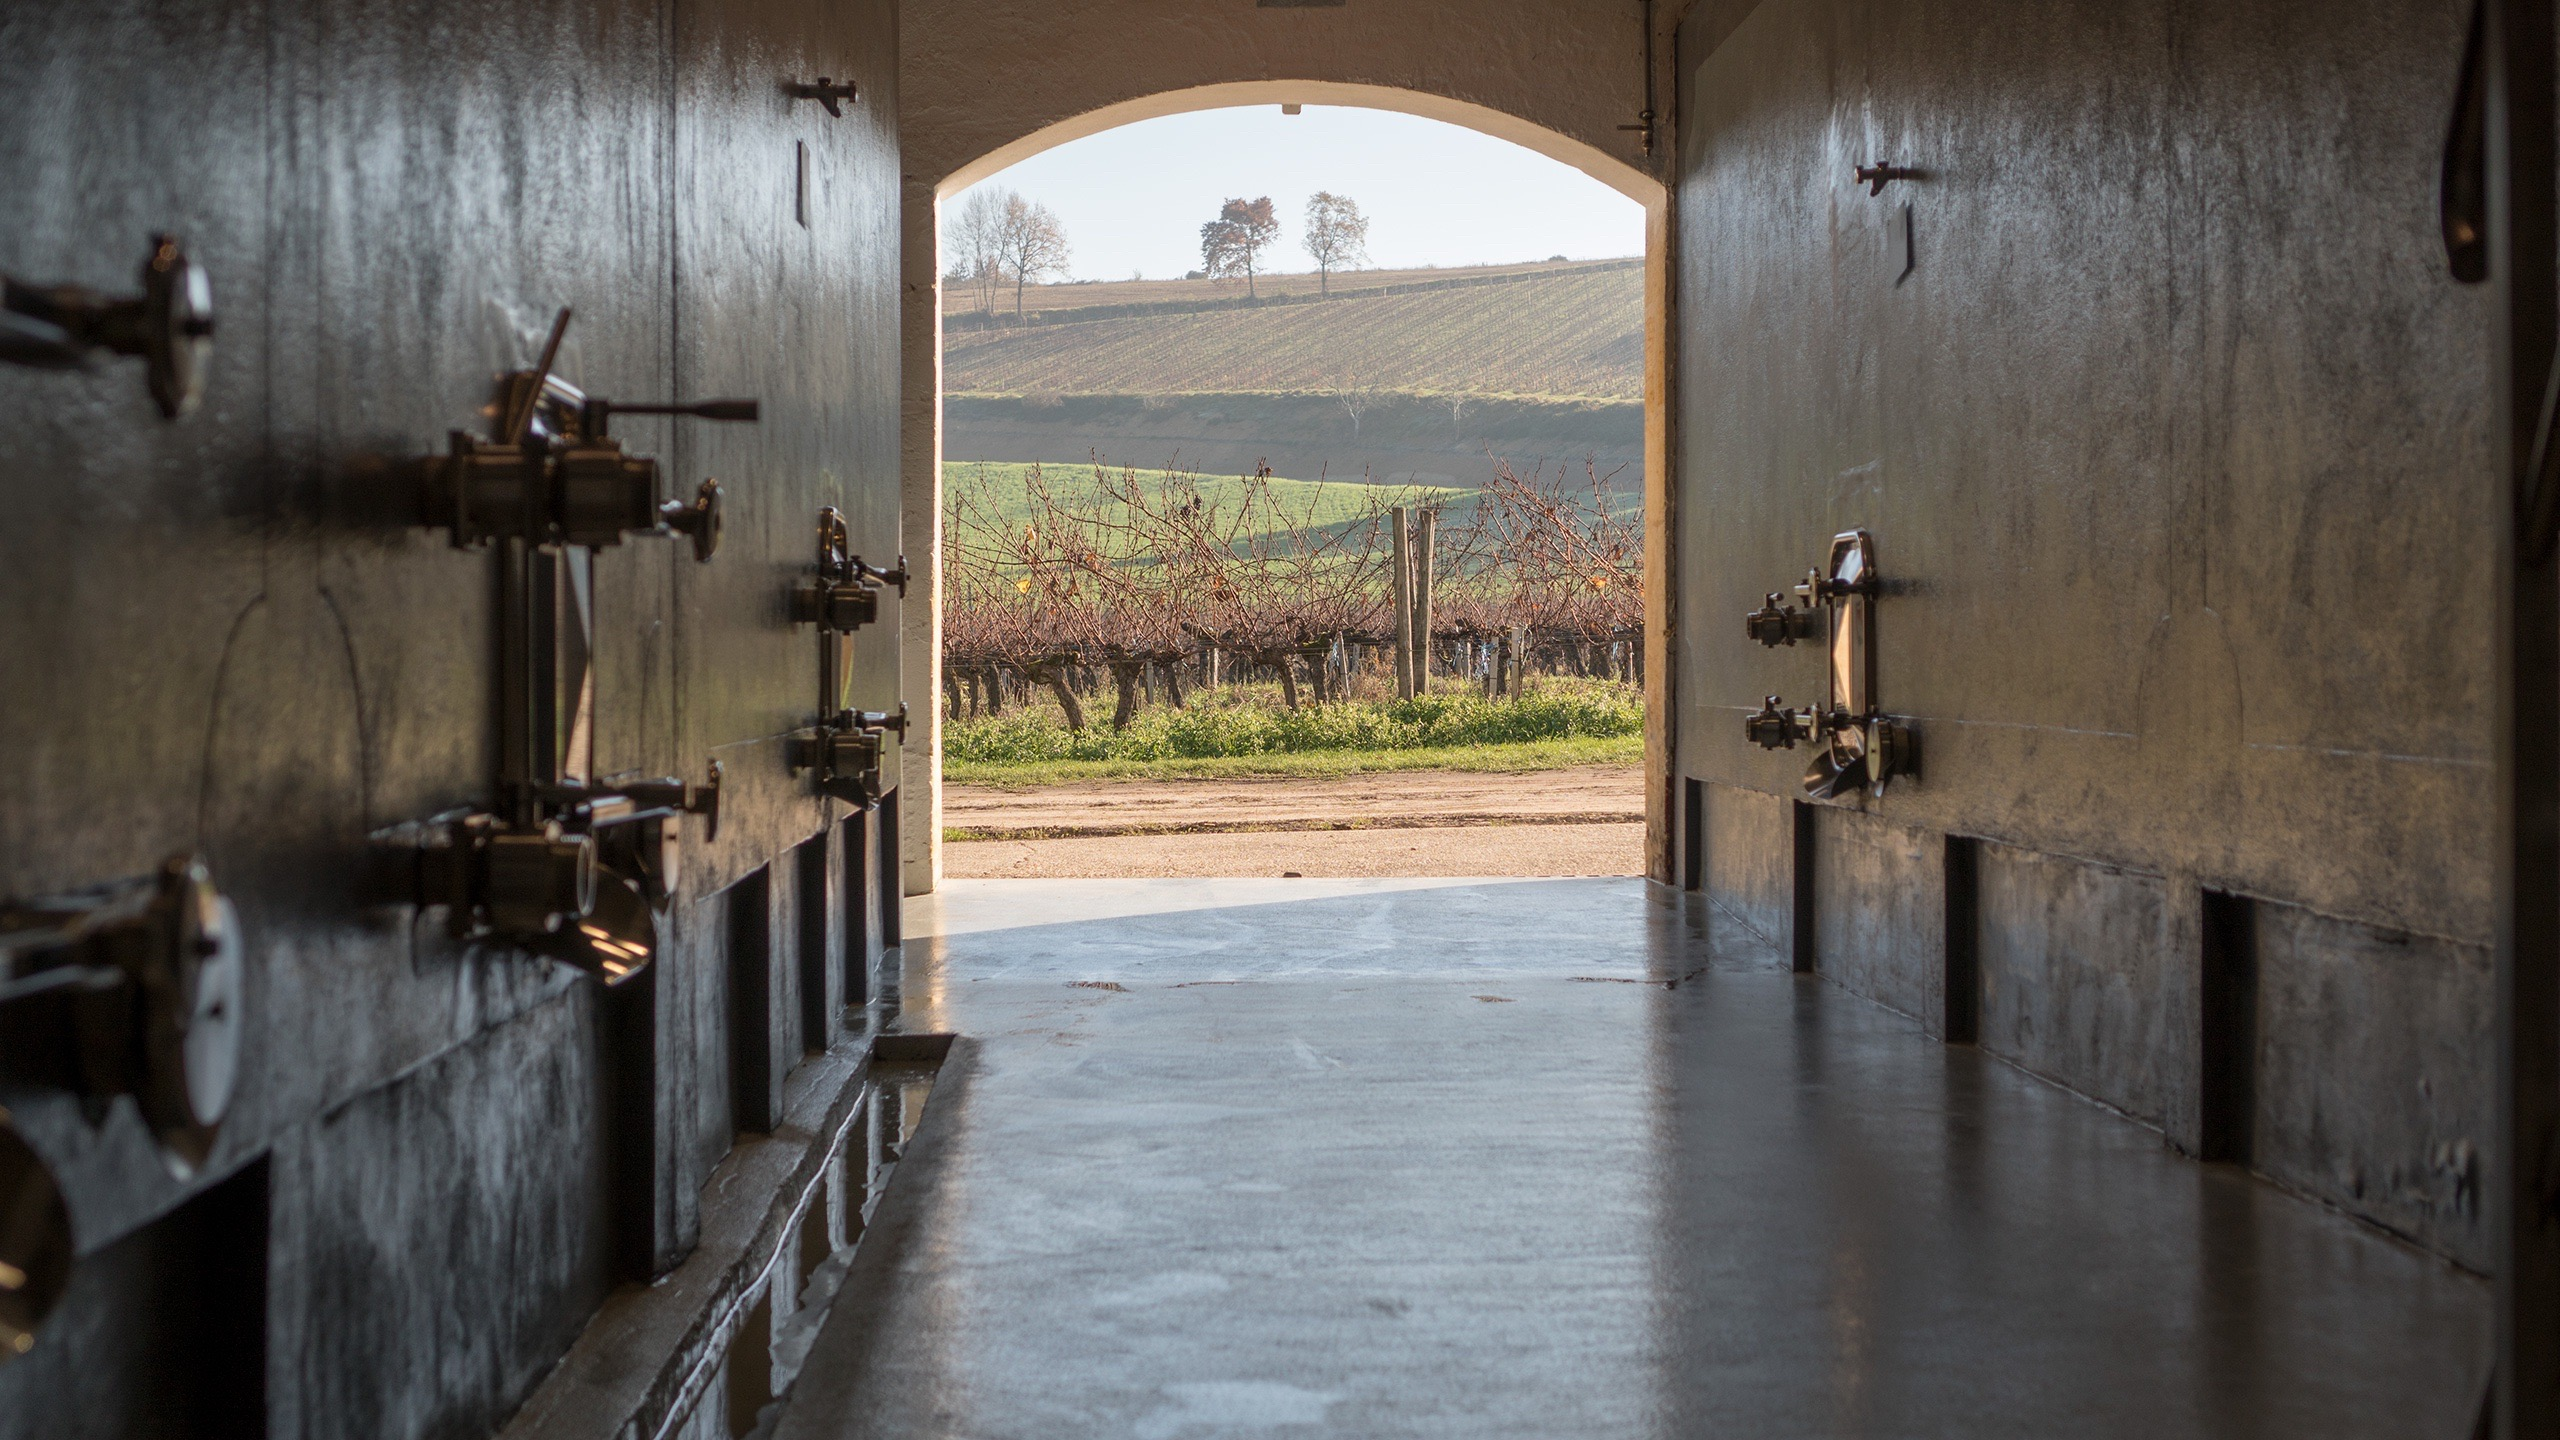 From the Winery